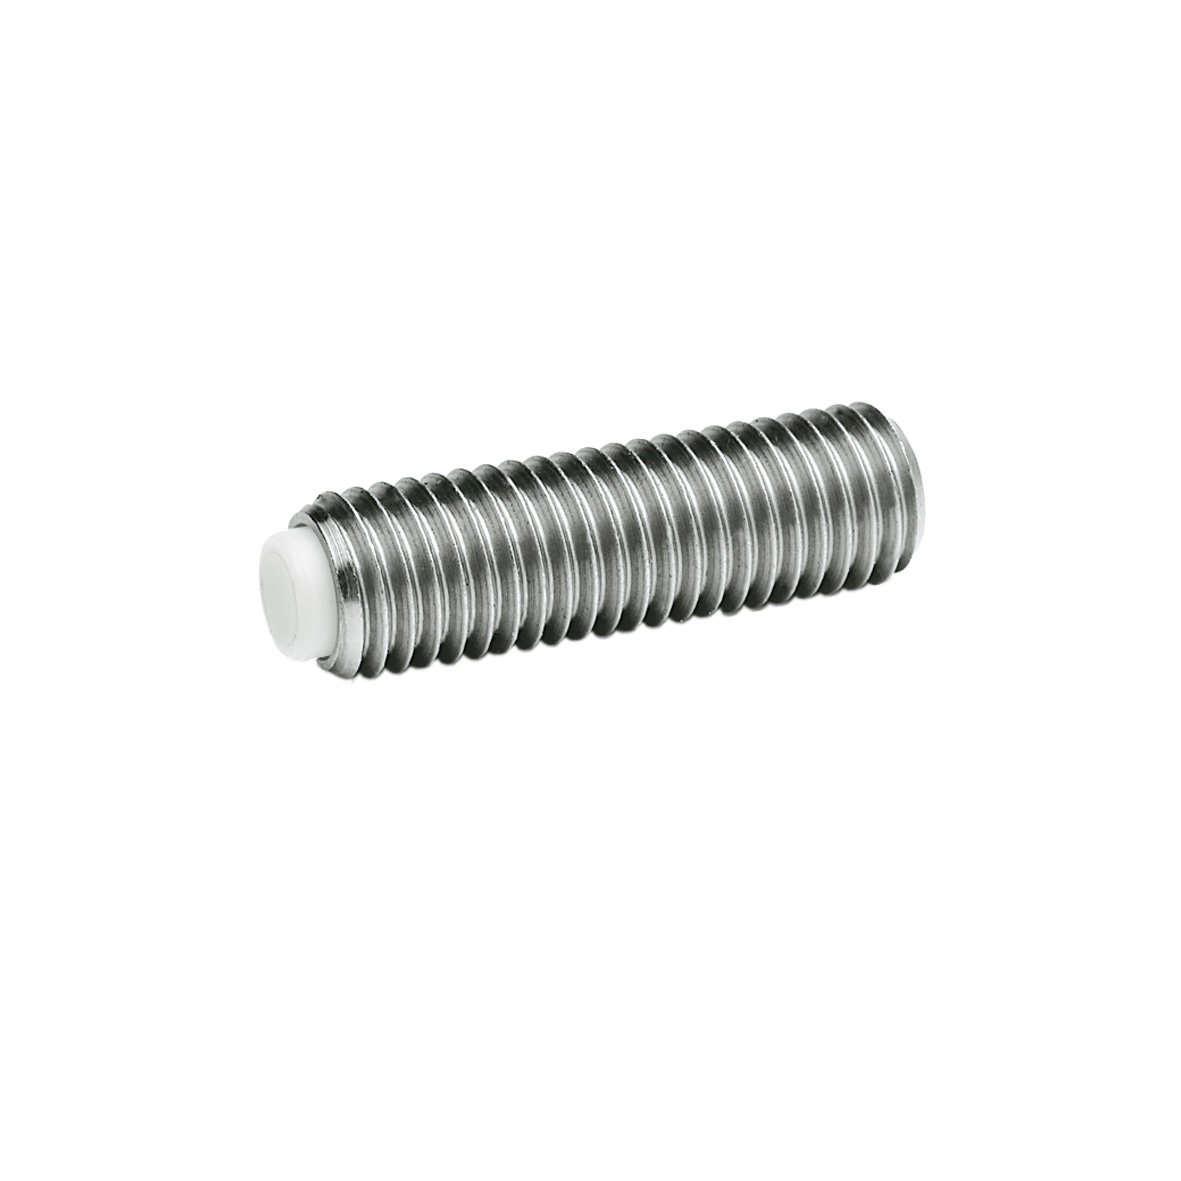 Body: Stainless Steel European Standard 1.4305 American Standard 303 J.W M3 x 0.5 Thread 5 mm Stud Length Otto Ganter Winco 3N5P69//DNT Set Screw with Nylon Tip